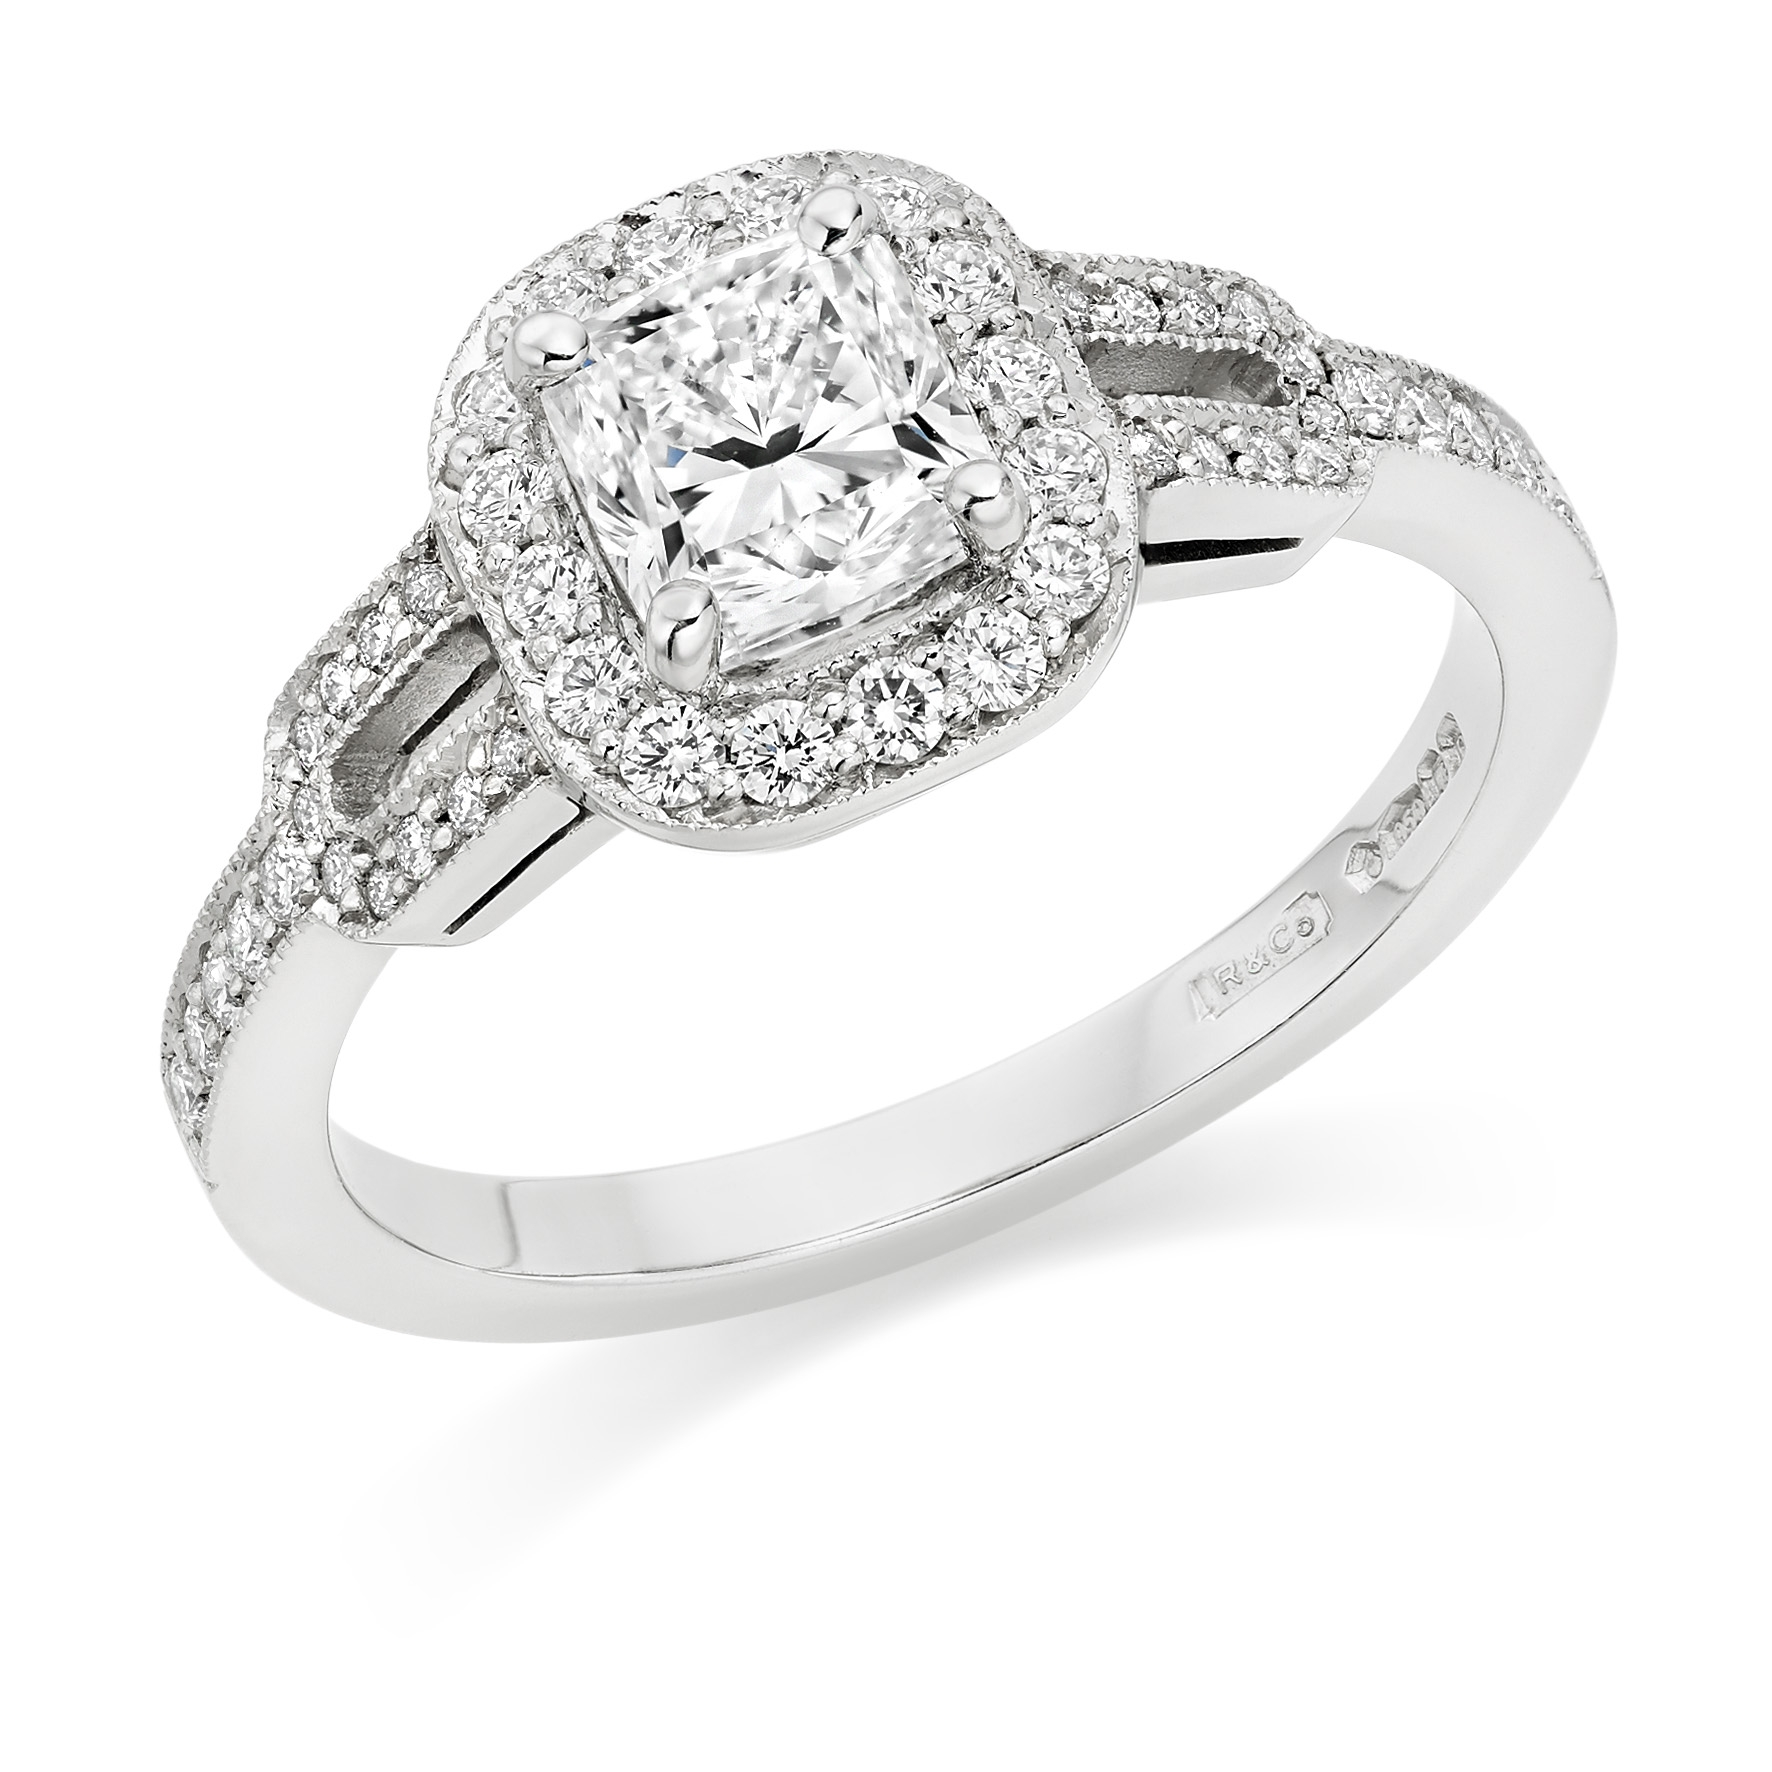 Cushion Cut Engagement Rings in Hatton Garden